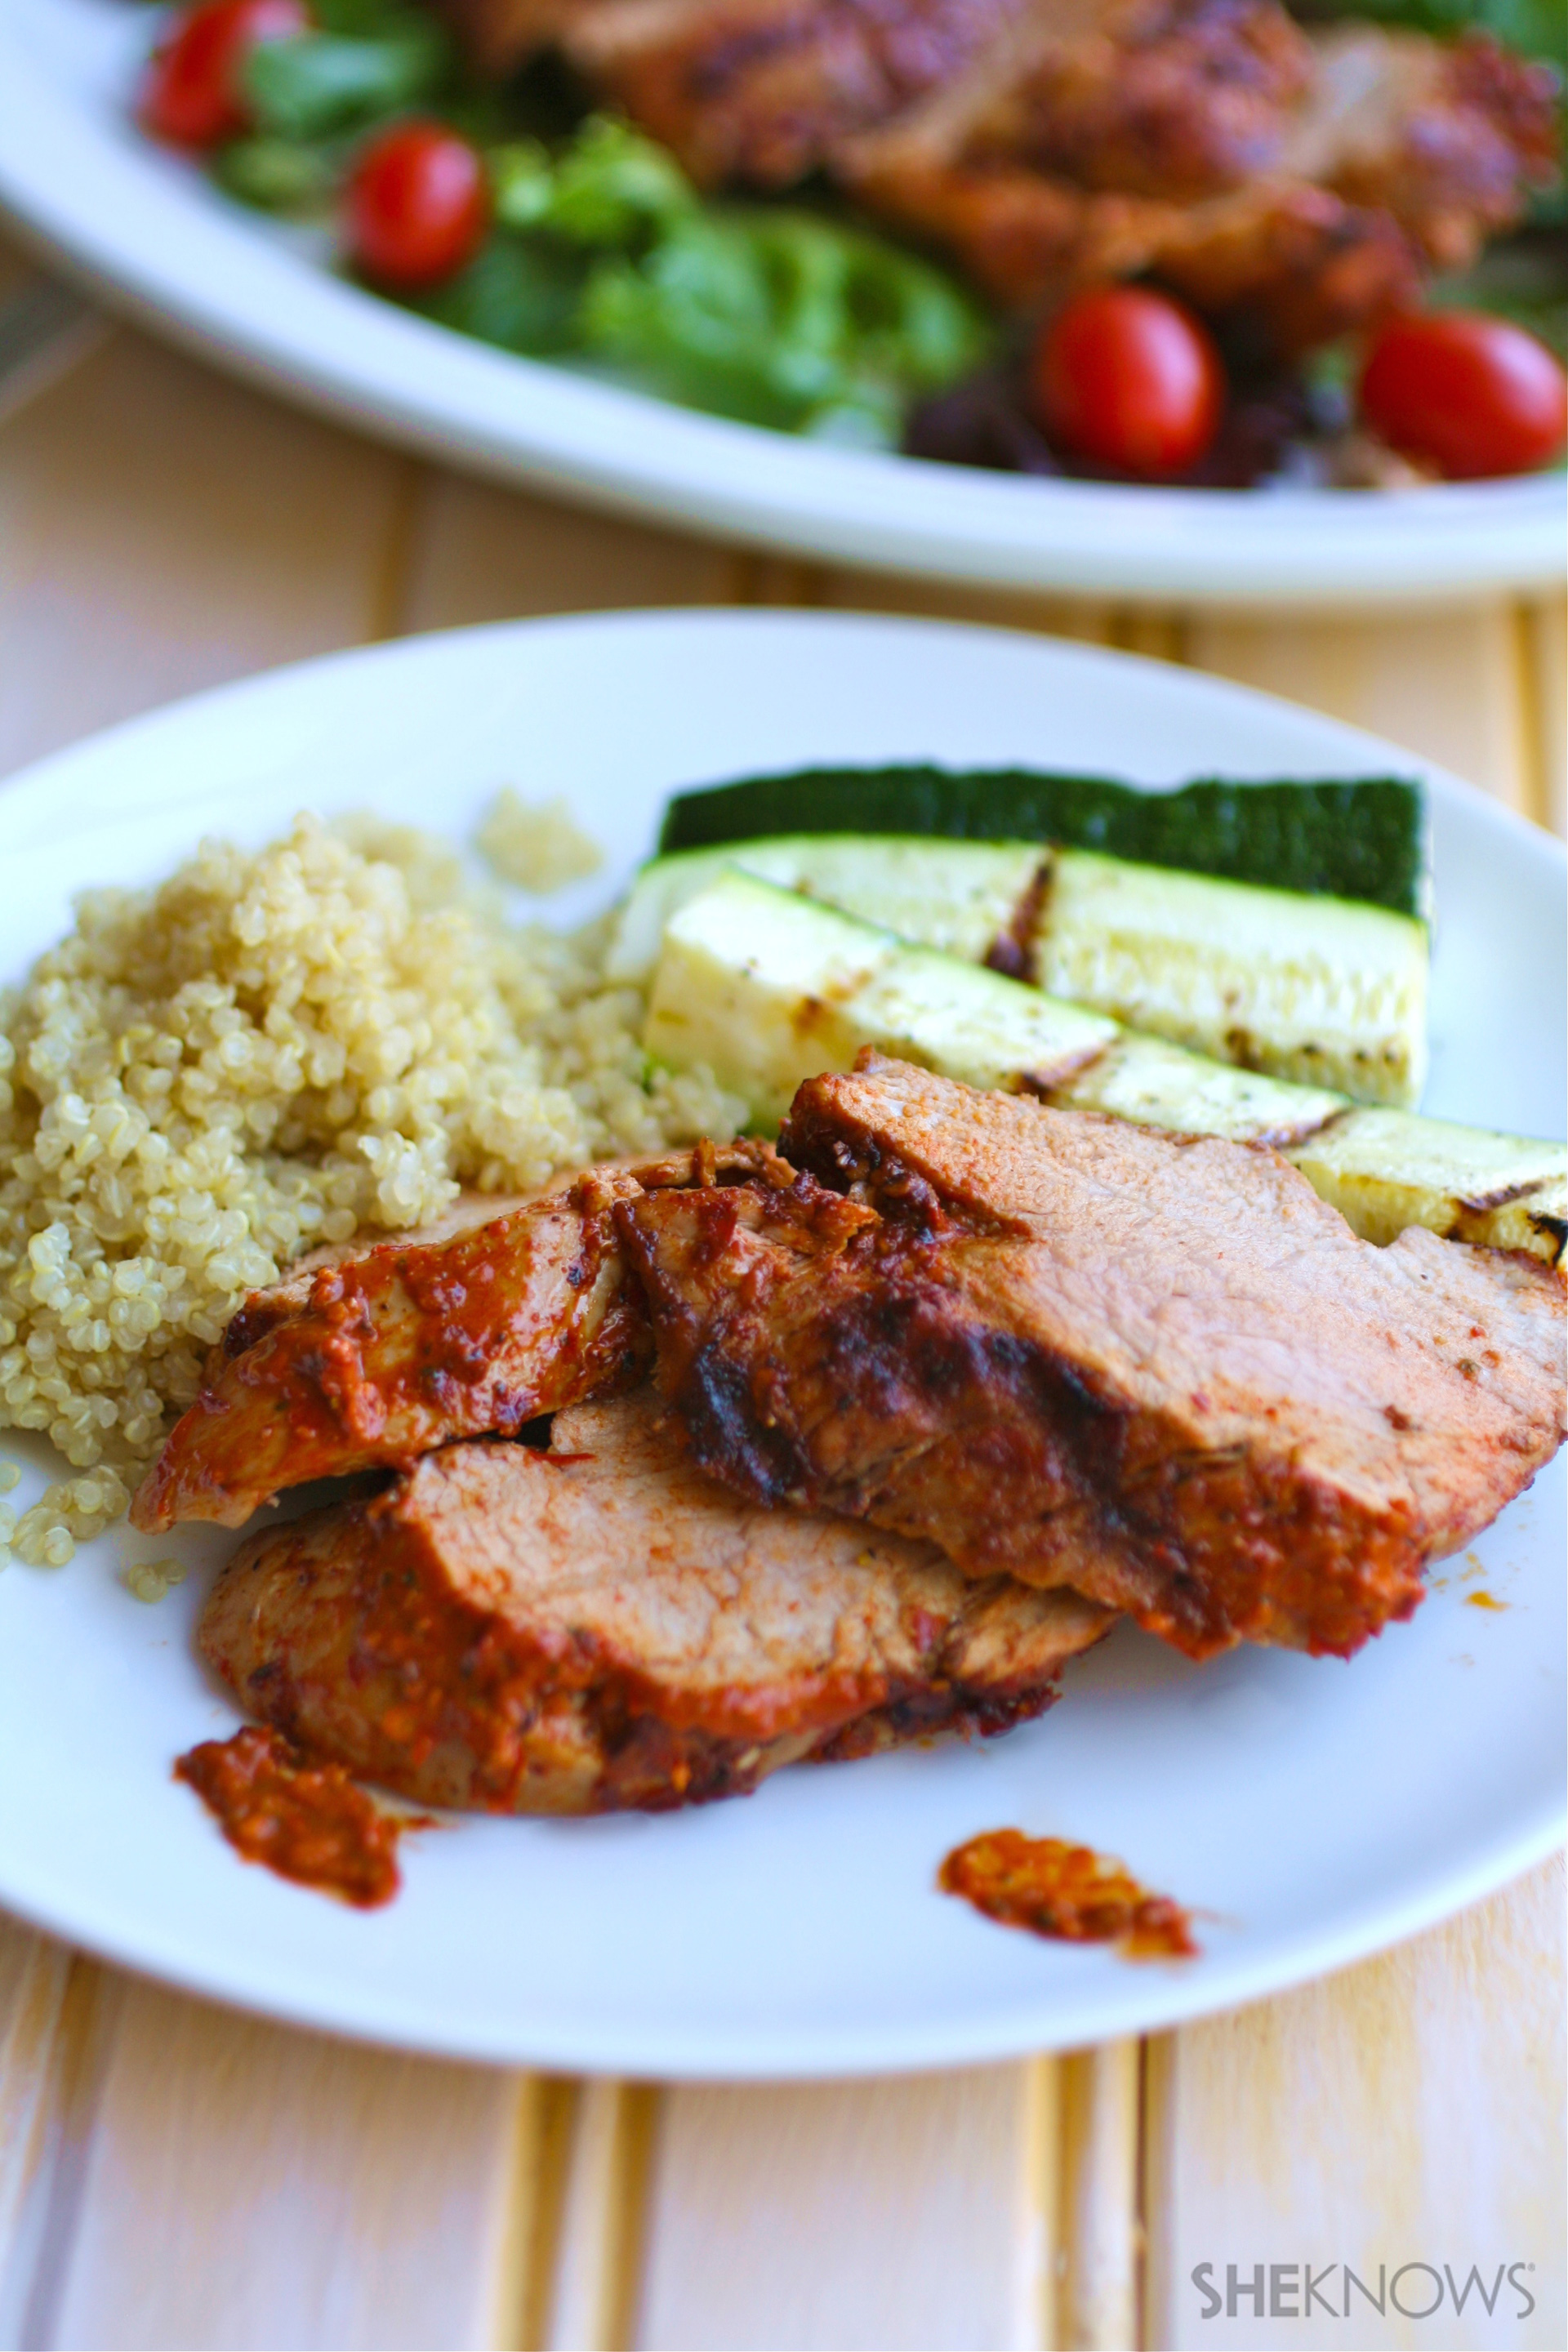 If you like it hot, then harissa is for you (and makes your grilled pork taste amazing)